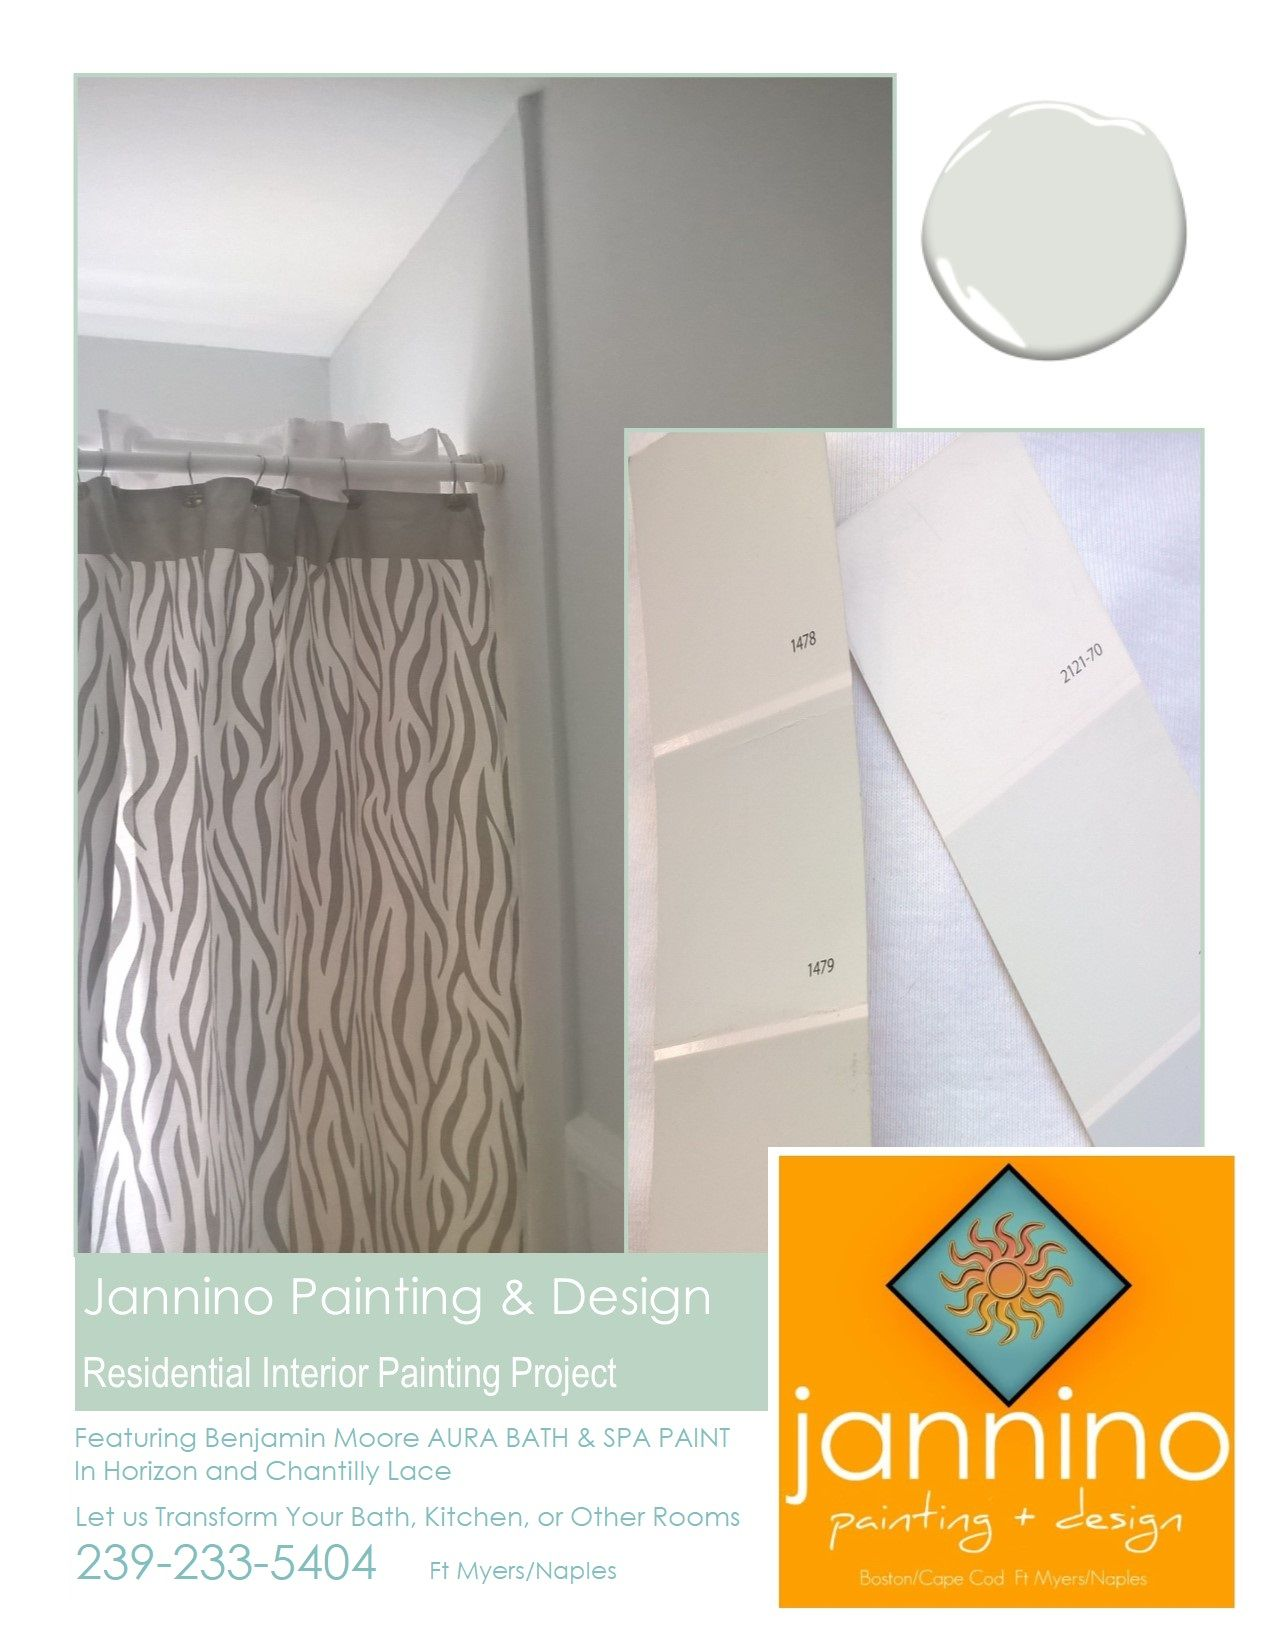 Benjamin Moore S Horizon And Chantilly Lace For This Bathroom